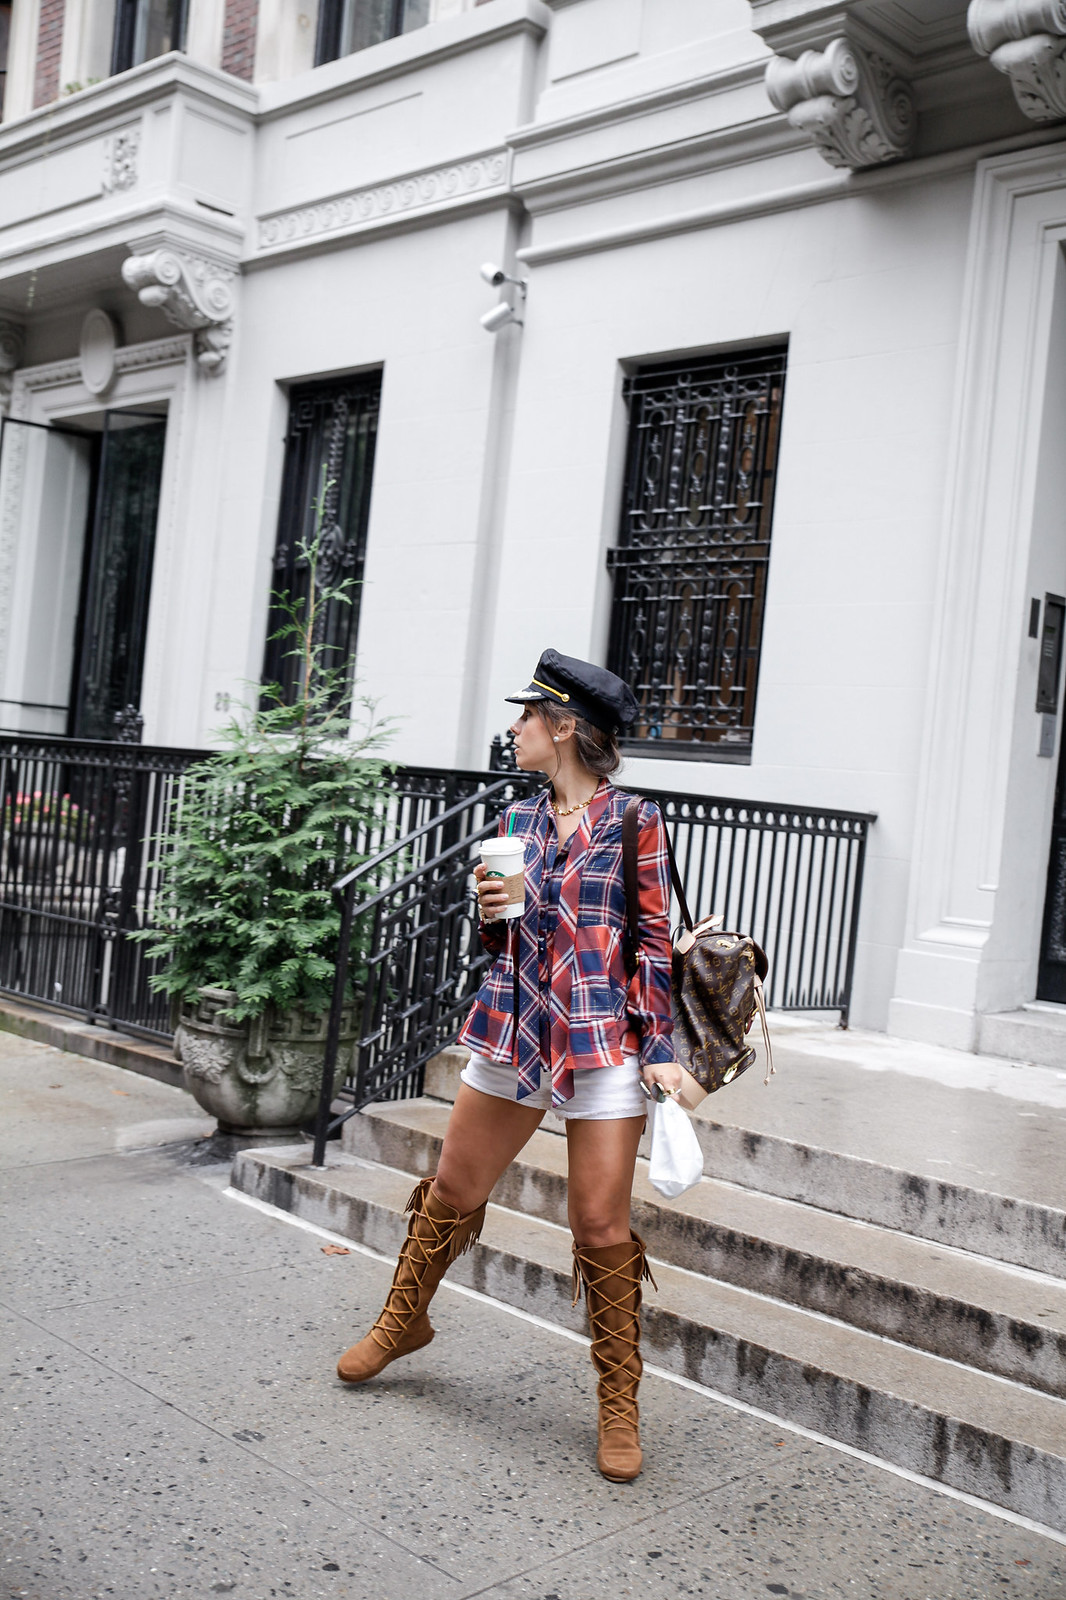 011__h_preppy_new_co_nueva_coleccion_otoño_invierno_tartan_fw18_theguestgirl_the_guest_girl_laura_santolaria_influencer_barcelona_street_style_new_york_fashion_week